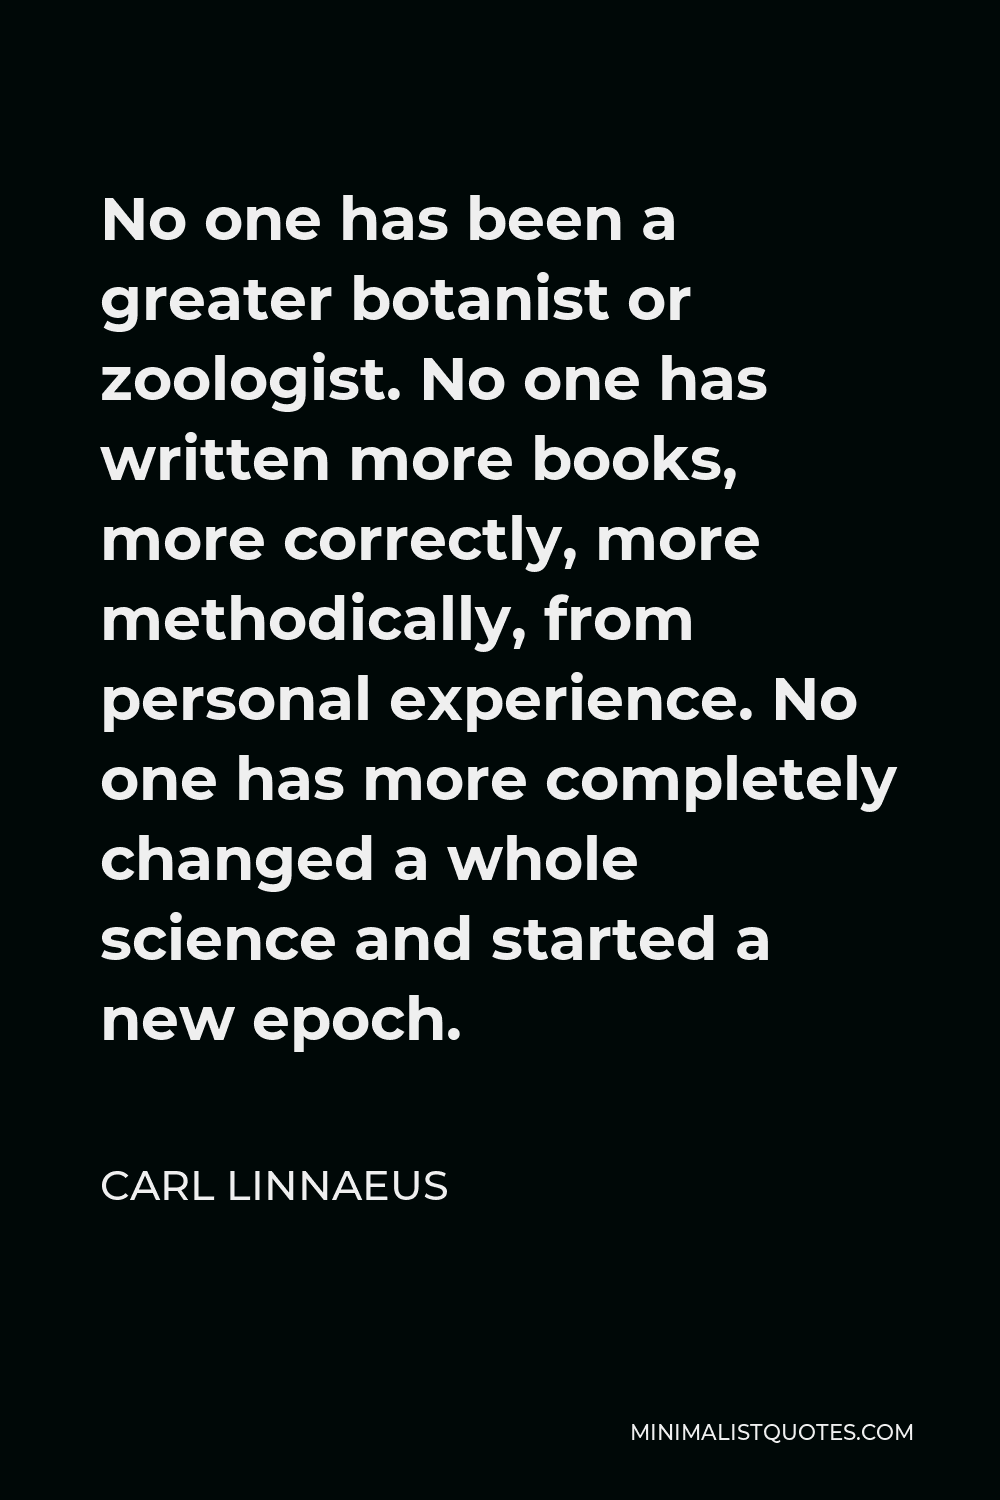 Carl Linnaeus Quote - No one has been a greater botanist or zoologist. No one has written more books, more correctly, more methodically, from personal experience. No one has more completely changed a whole science and started a new epoch.